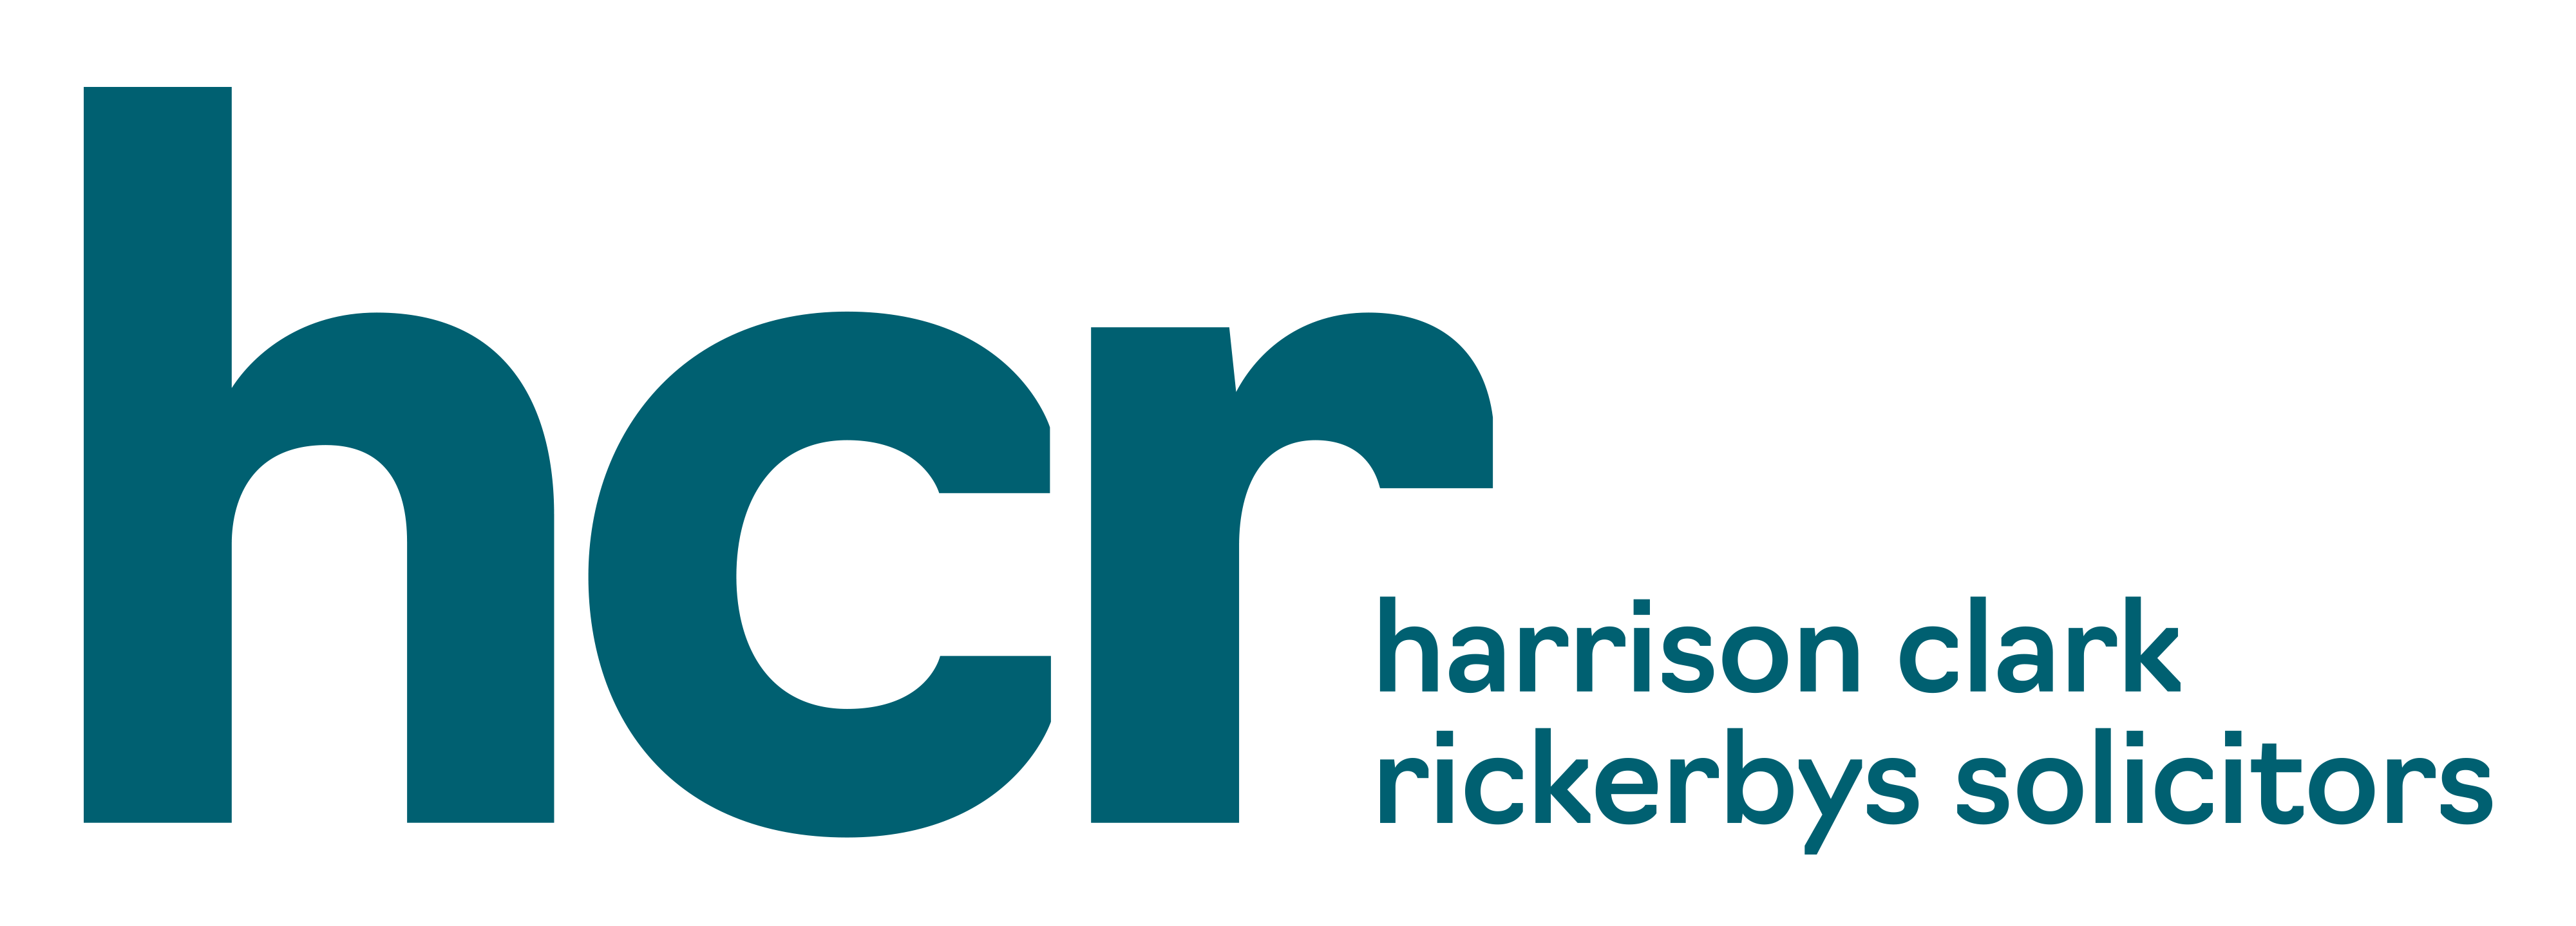 HCR - UPDATED logo.png